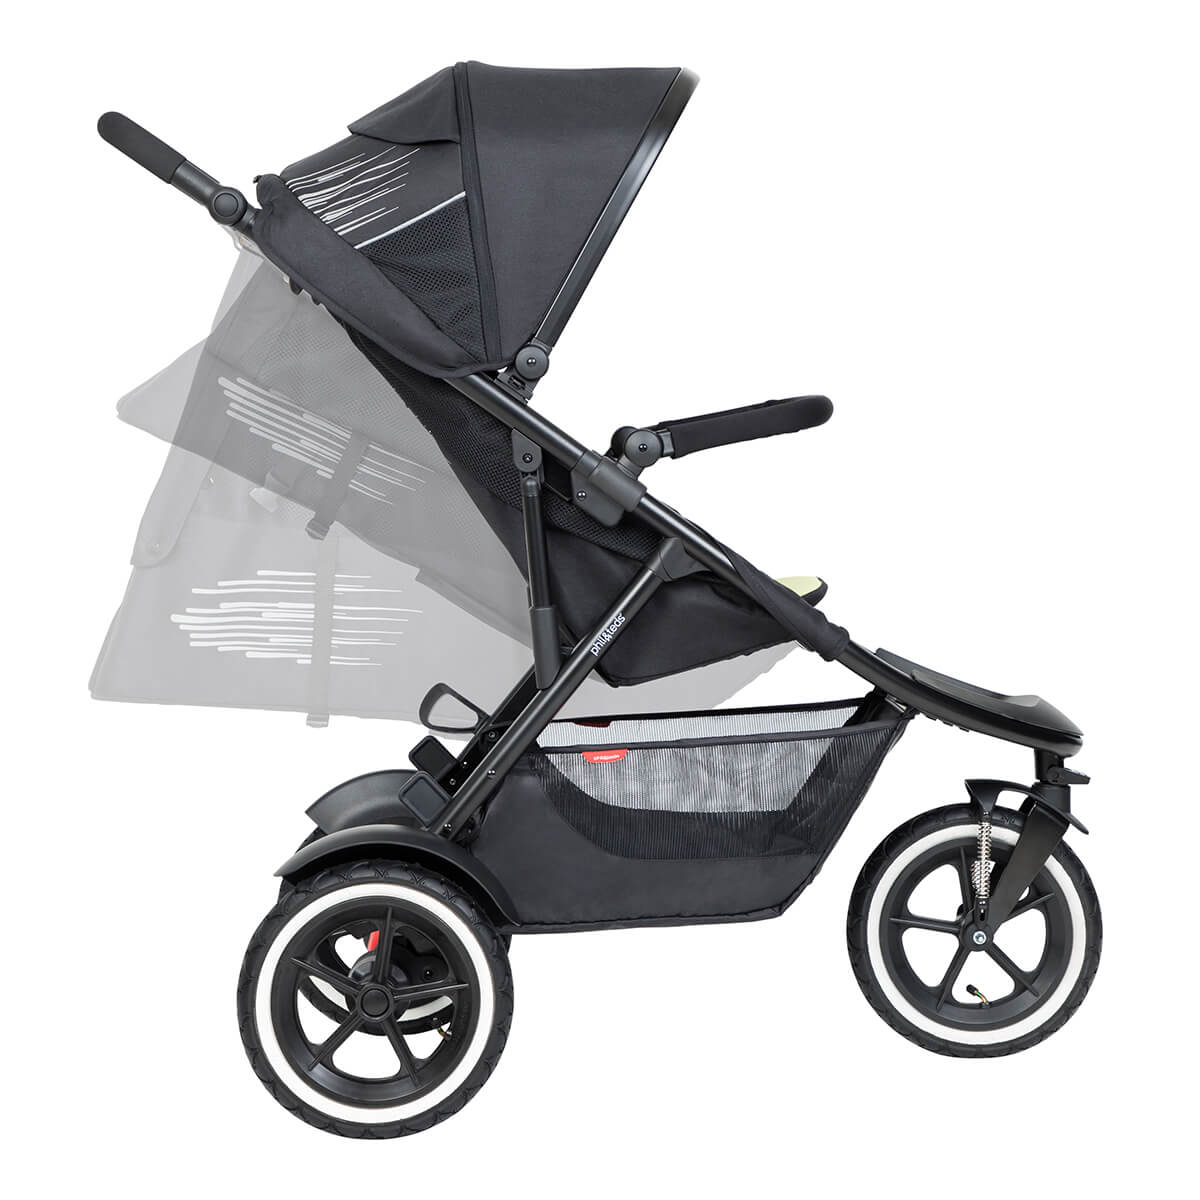 https://cdn.accentuate.io/4546157379689/19119322628201/philteds-sport-buggy-can-recline-in-multiple-angles-including-full-recline-for-newborn-baby-v1625778187769.jpg?1200x1200